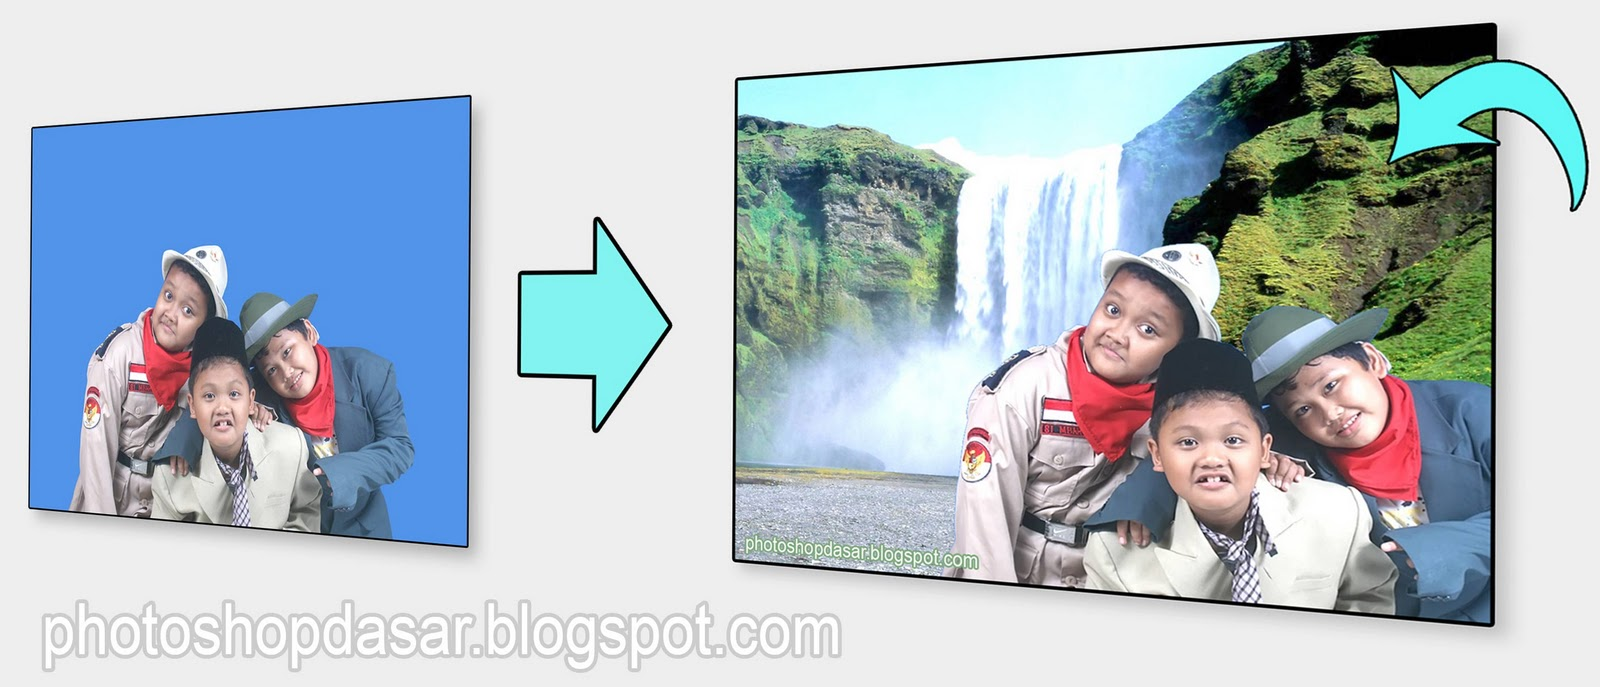 Cara mengganti Background foto dengan Adobe Photoshop cs2 dan cs3 ...